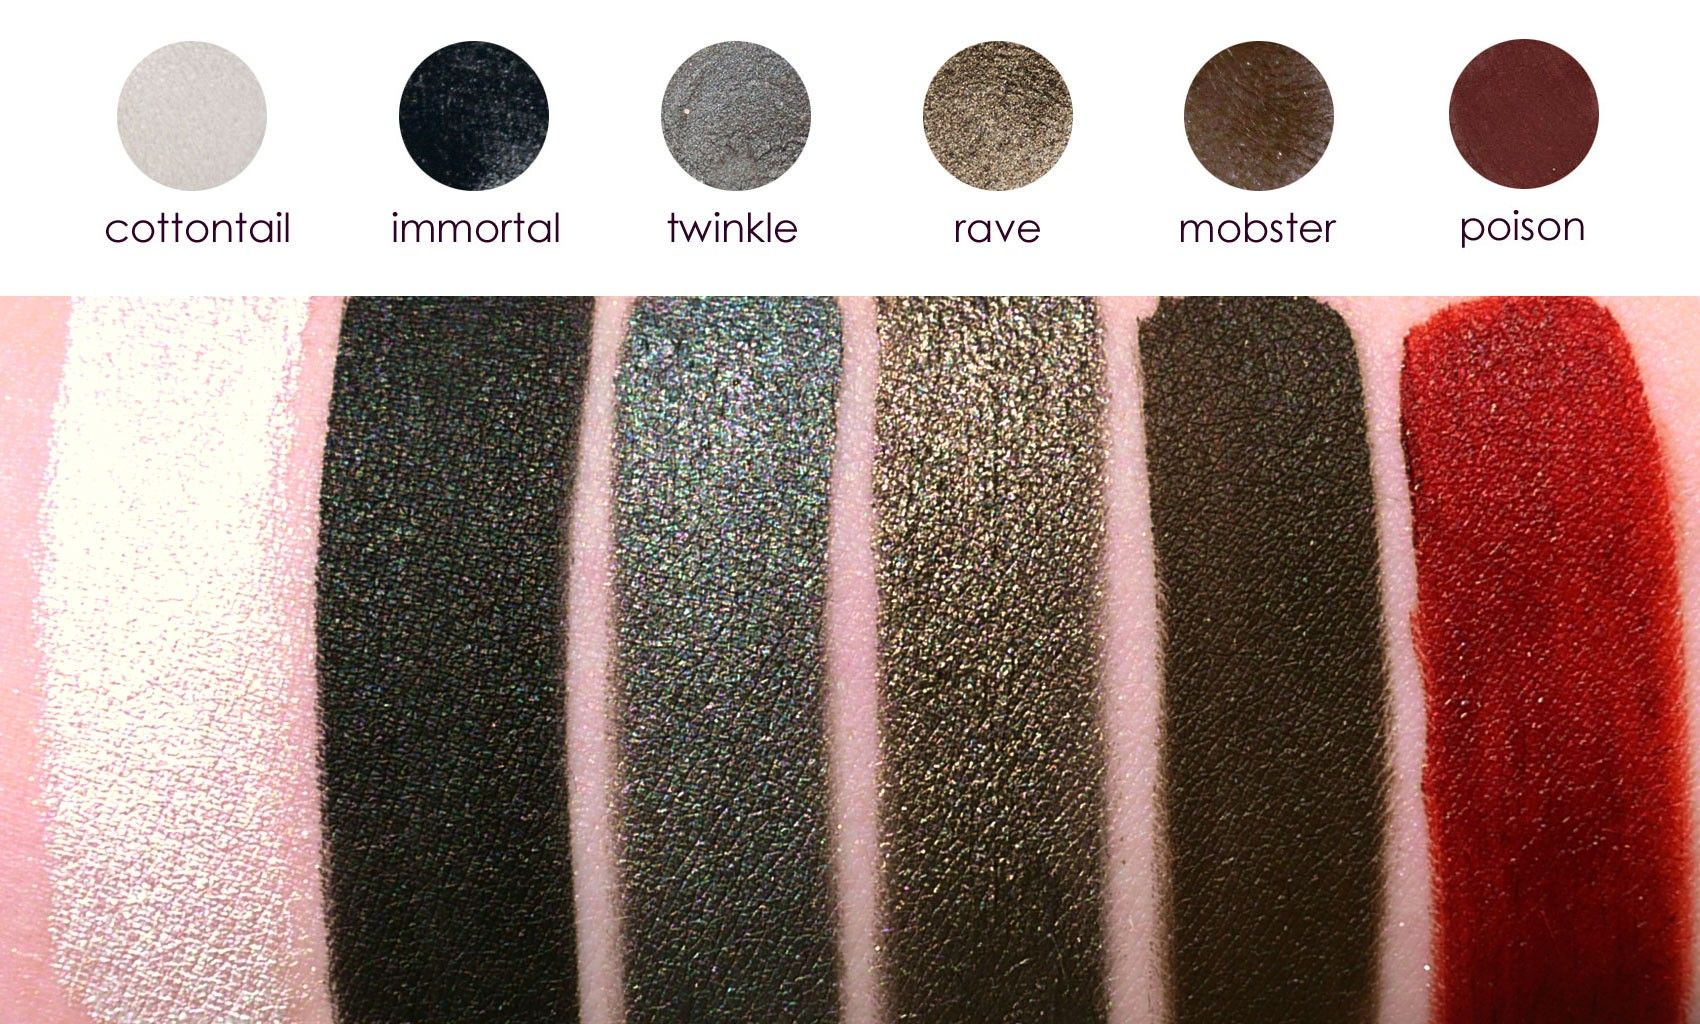 Pin By Tihana Harrison On What To Wear With Shoes Makeup Geek Makeup Geek Swatches Makeup Geek Cosmetics